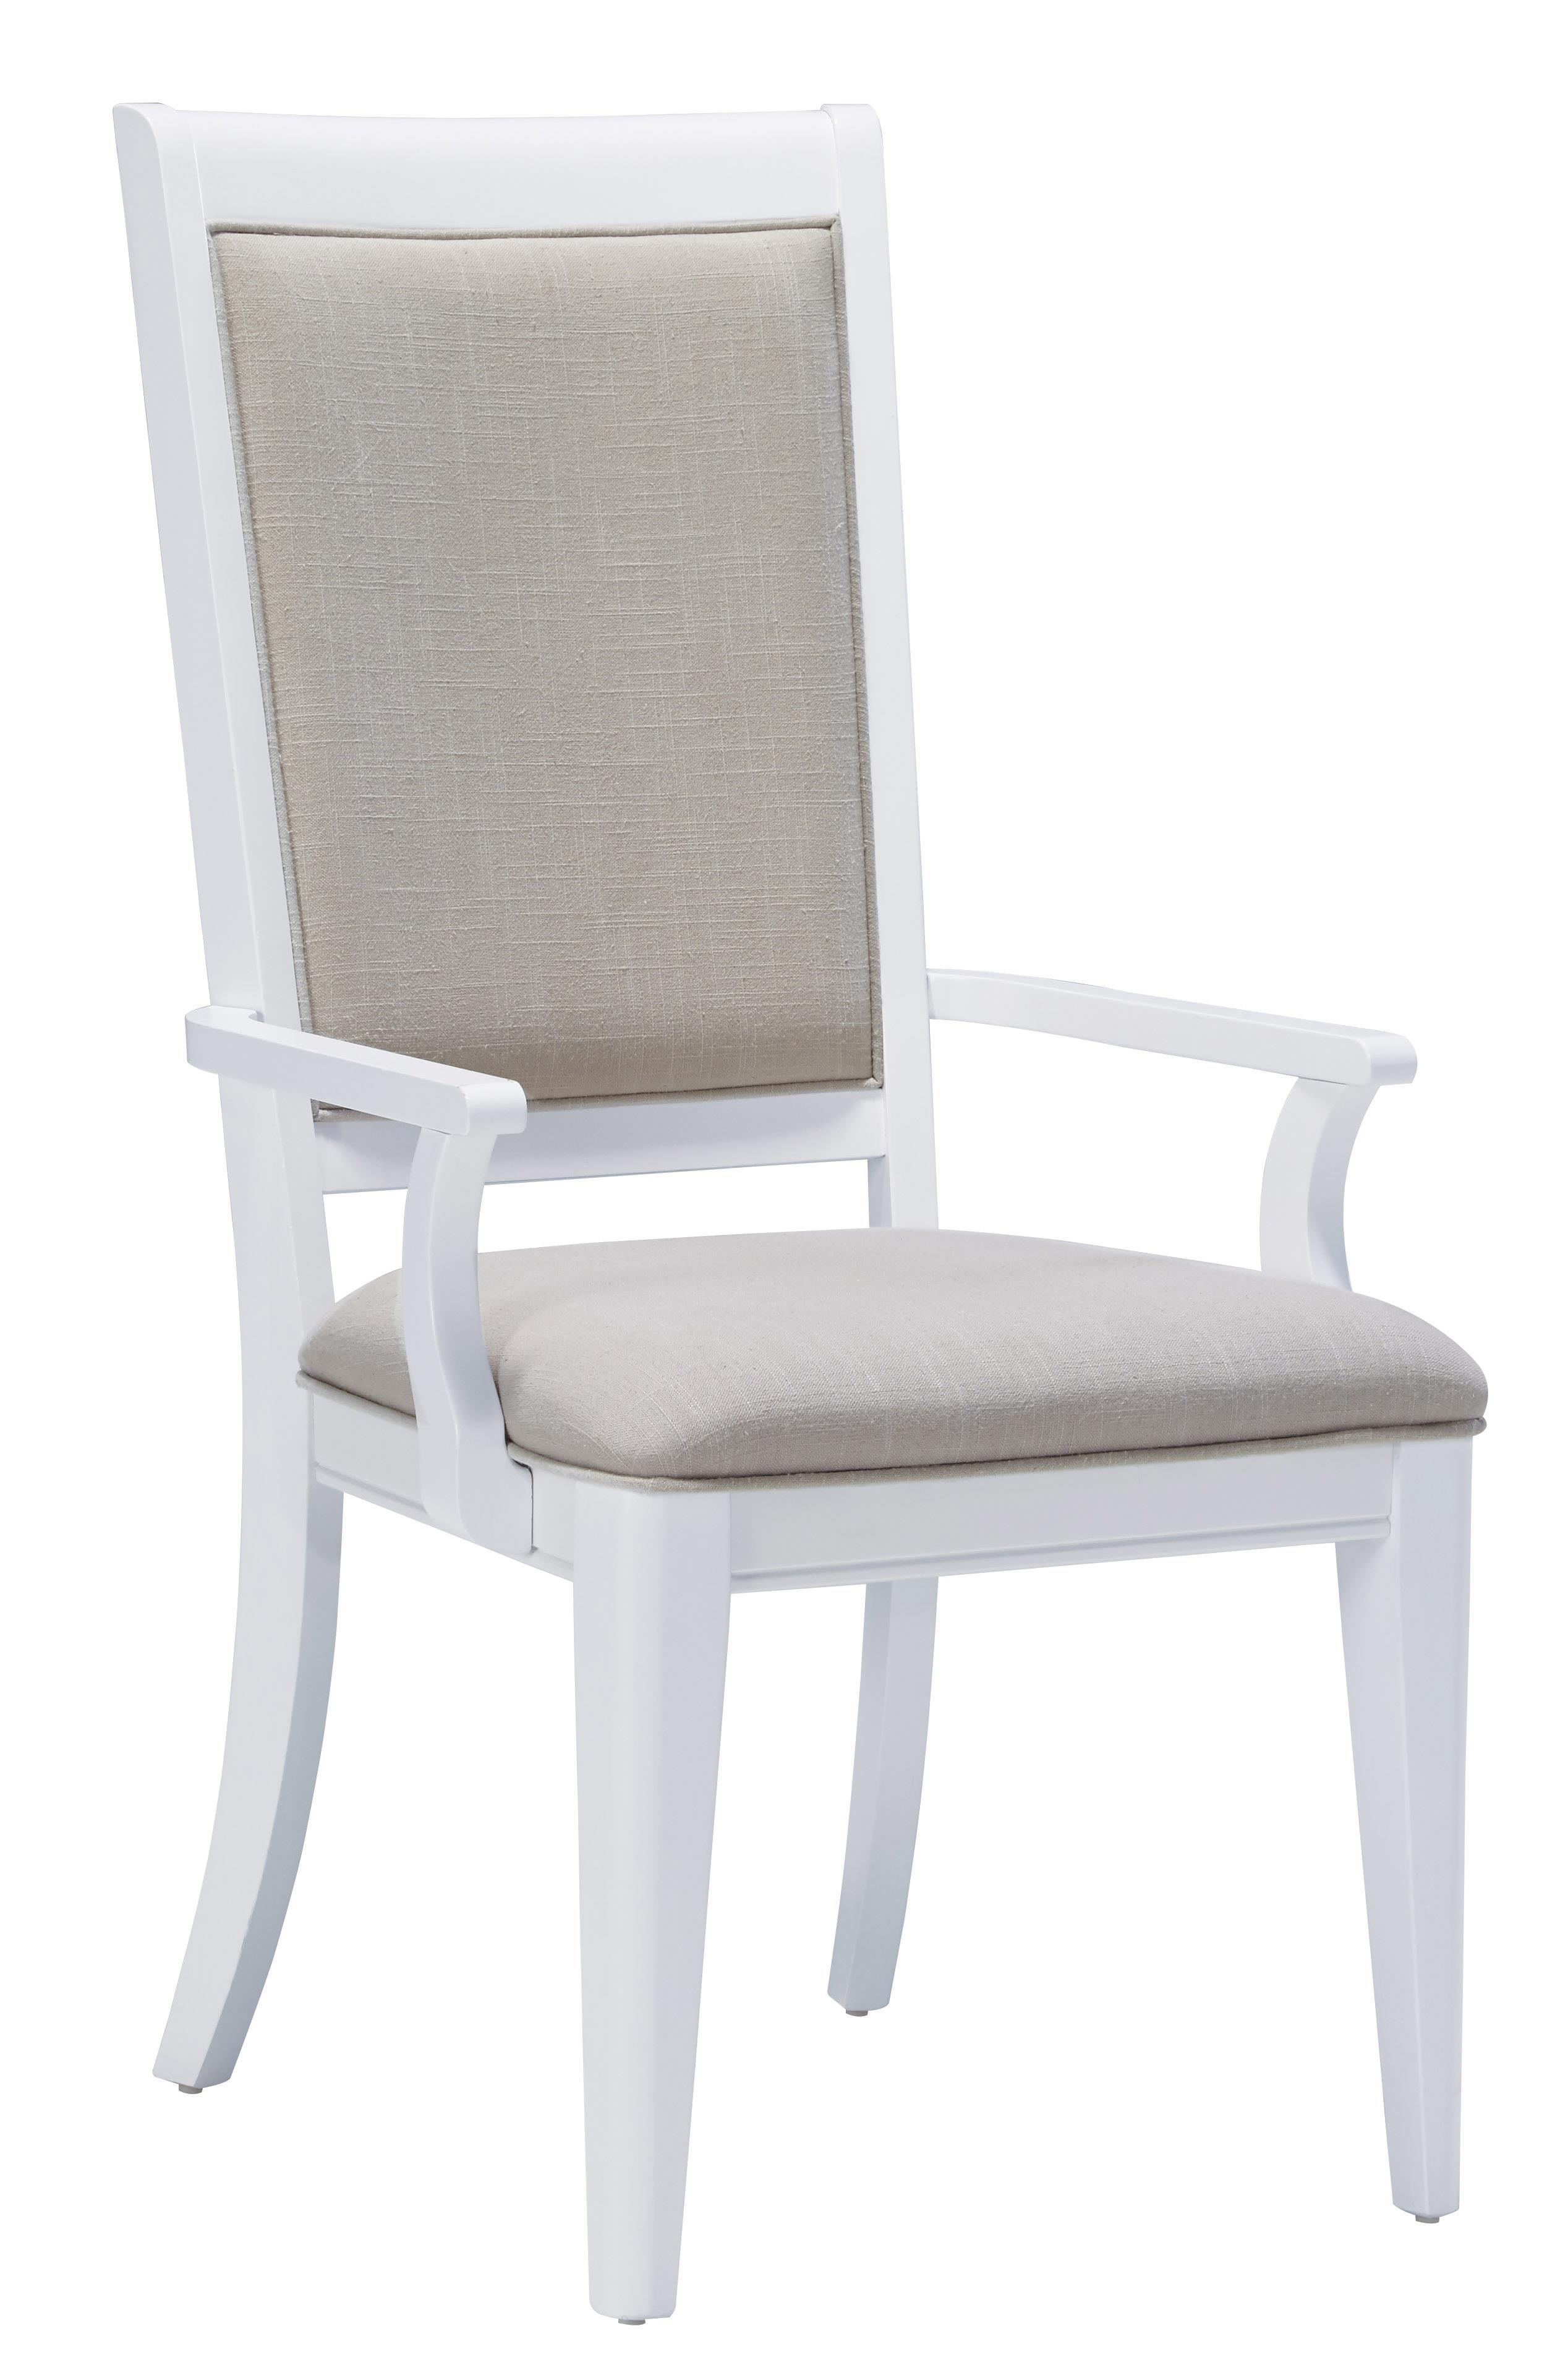 Samuel Lawrence Brighton Arm Chair - Item Number: 8673-155